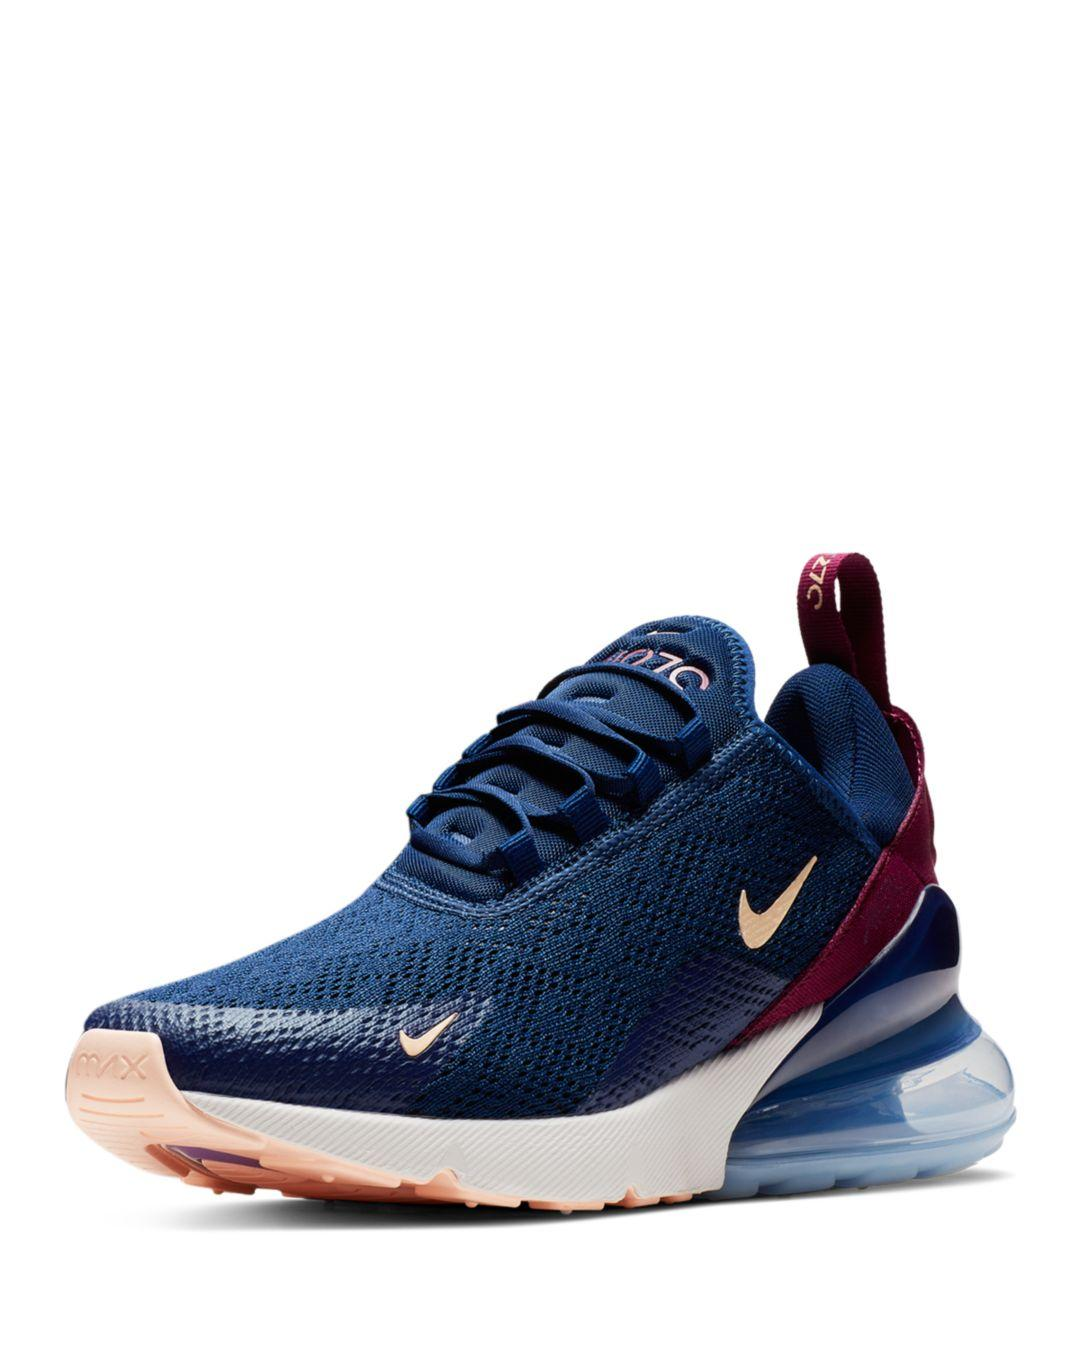 Nike Air Max 270 Shoes Low TonyStreets